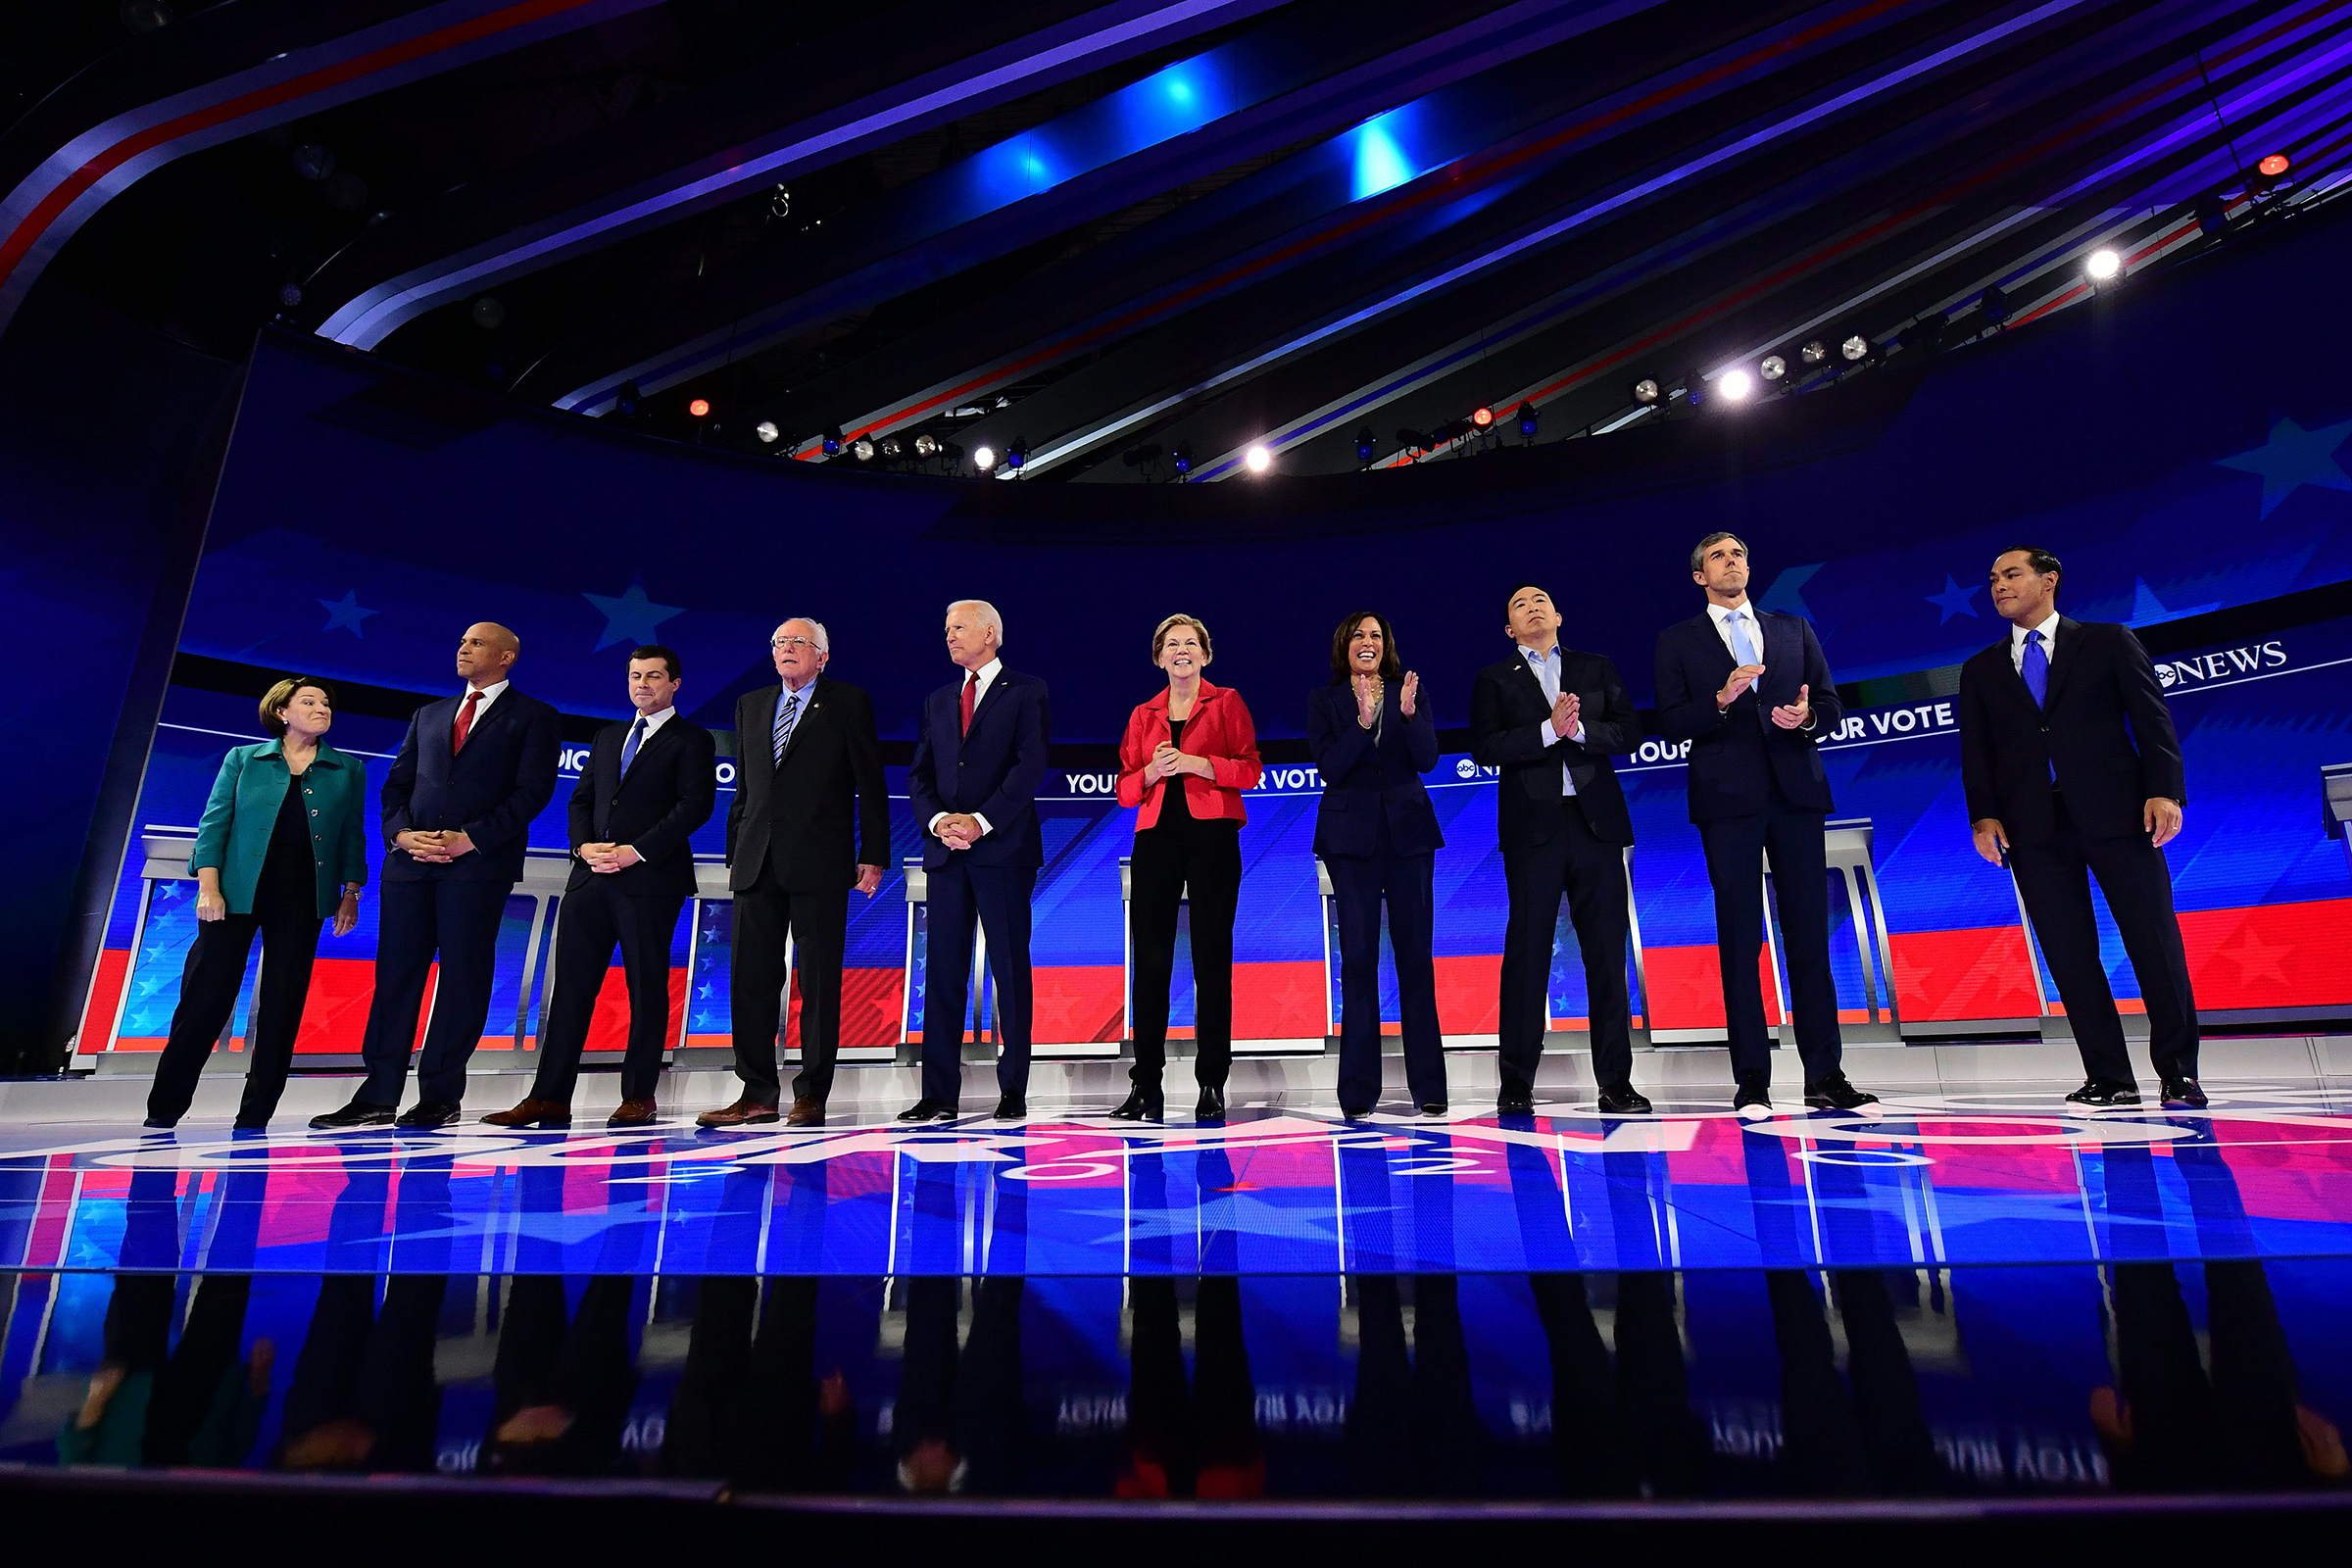 Democratic presidential hopefuls (L-R) Senator of New Jersey Cory Booker, Mayor of South Bend, Indiana, Pete Buttigieg, Senator of Vermont Bernie Sanders, Former Vice President Joe Biden, Senator of Massachusetts Elizabeth Warren, Senator of California Kamala Harris, Tech entrepreneur Andrew Yang, Former Representative of Texas Beto O'Rourke and Former housing secretary Julian Castro stand onstage ahead of the third Democratic primary debate of the 2020 presidential campaign season at Texas Southern University in Houston, Texas on September 12, 2019.